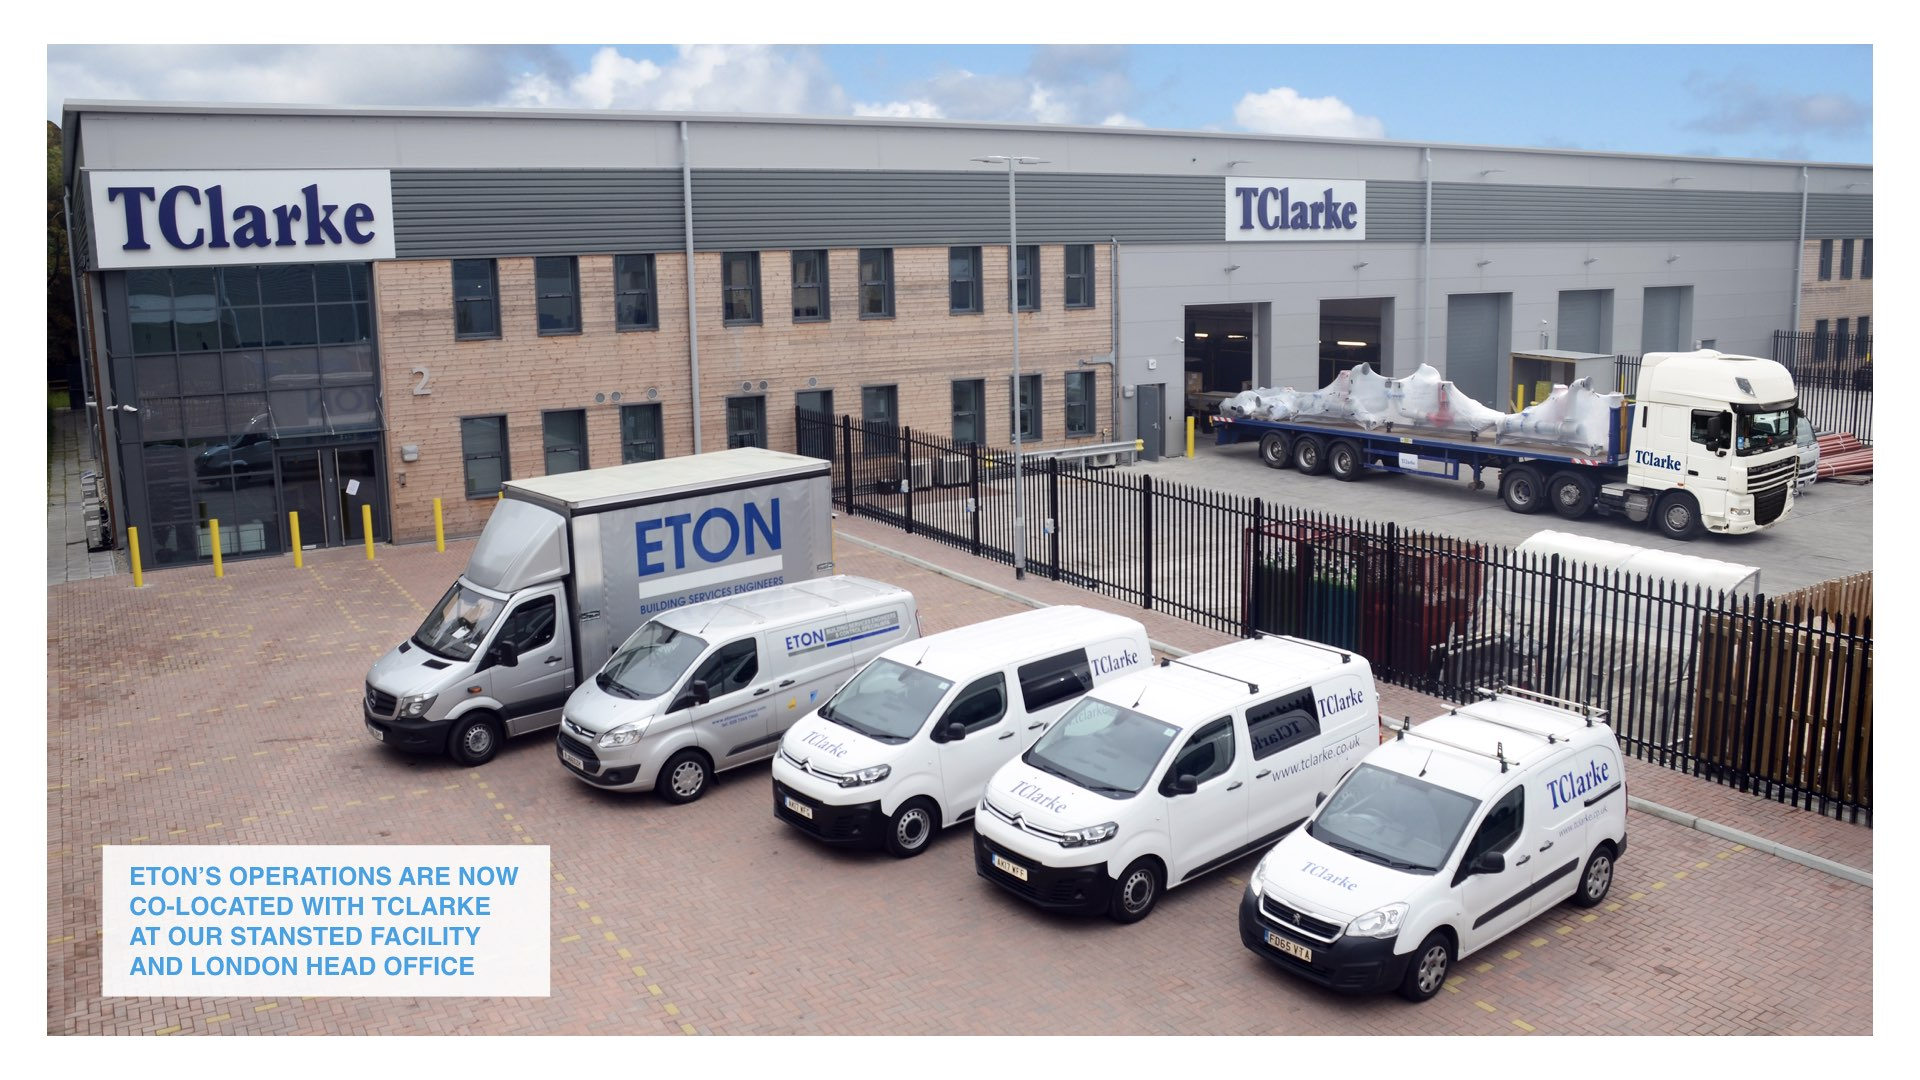 The Strategy driving our ETON acquisition